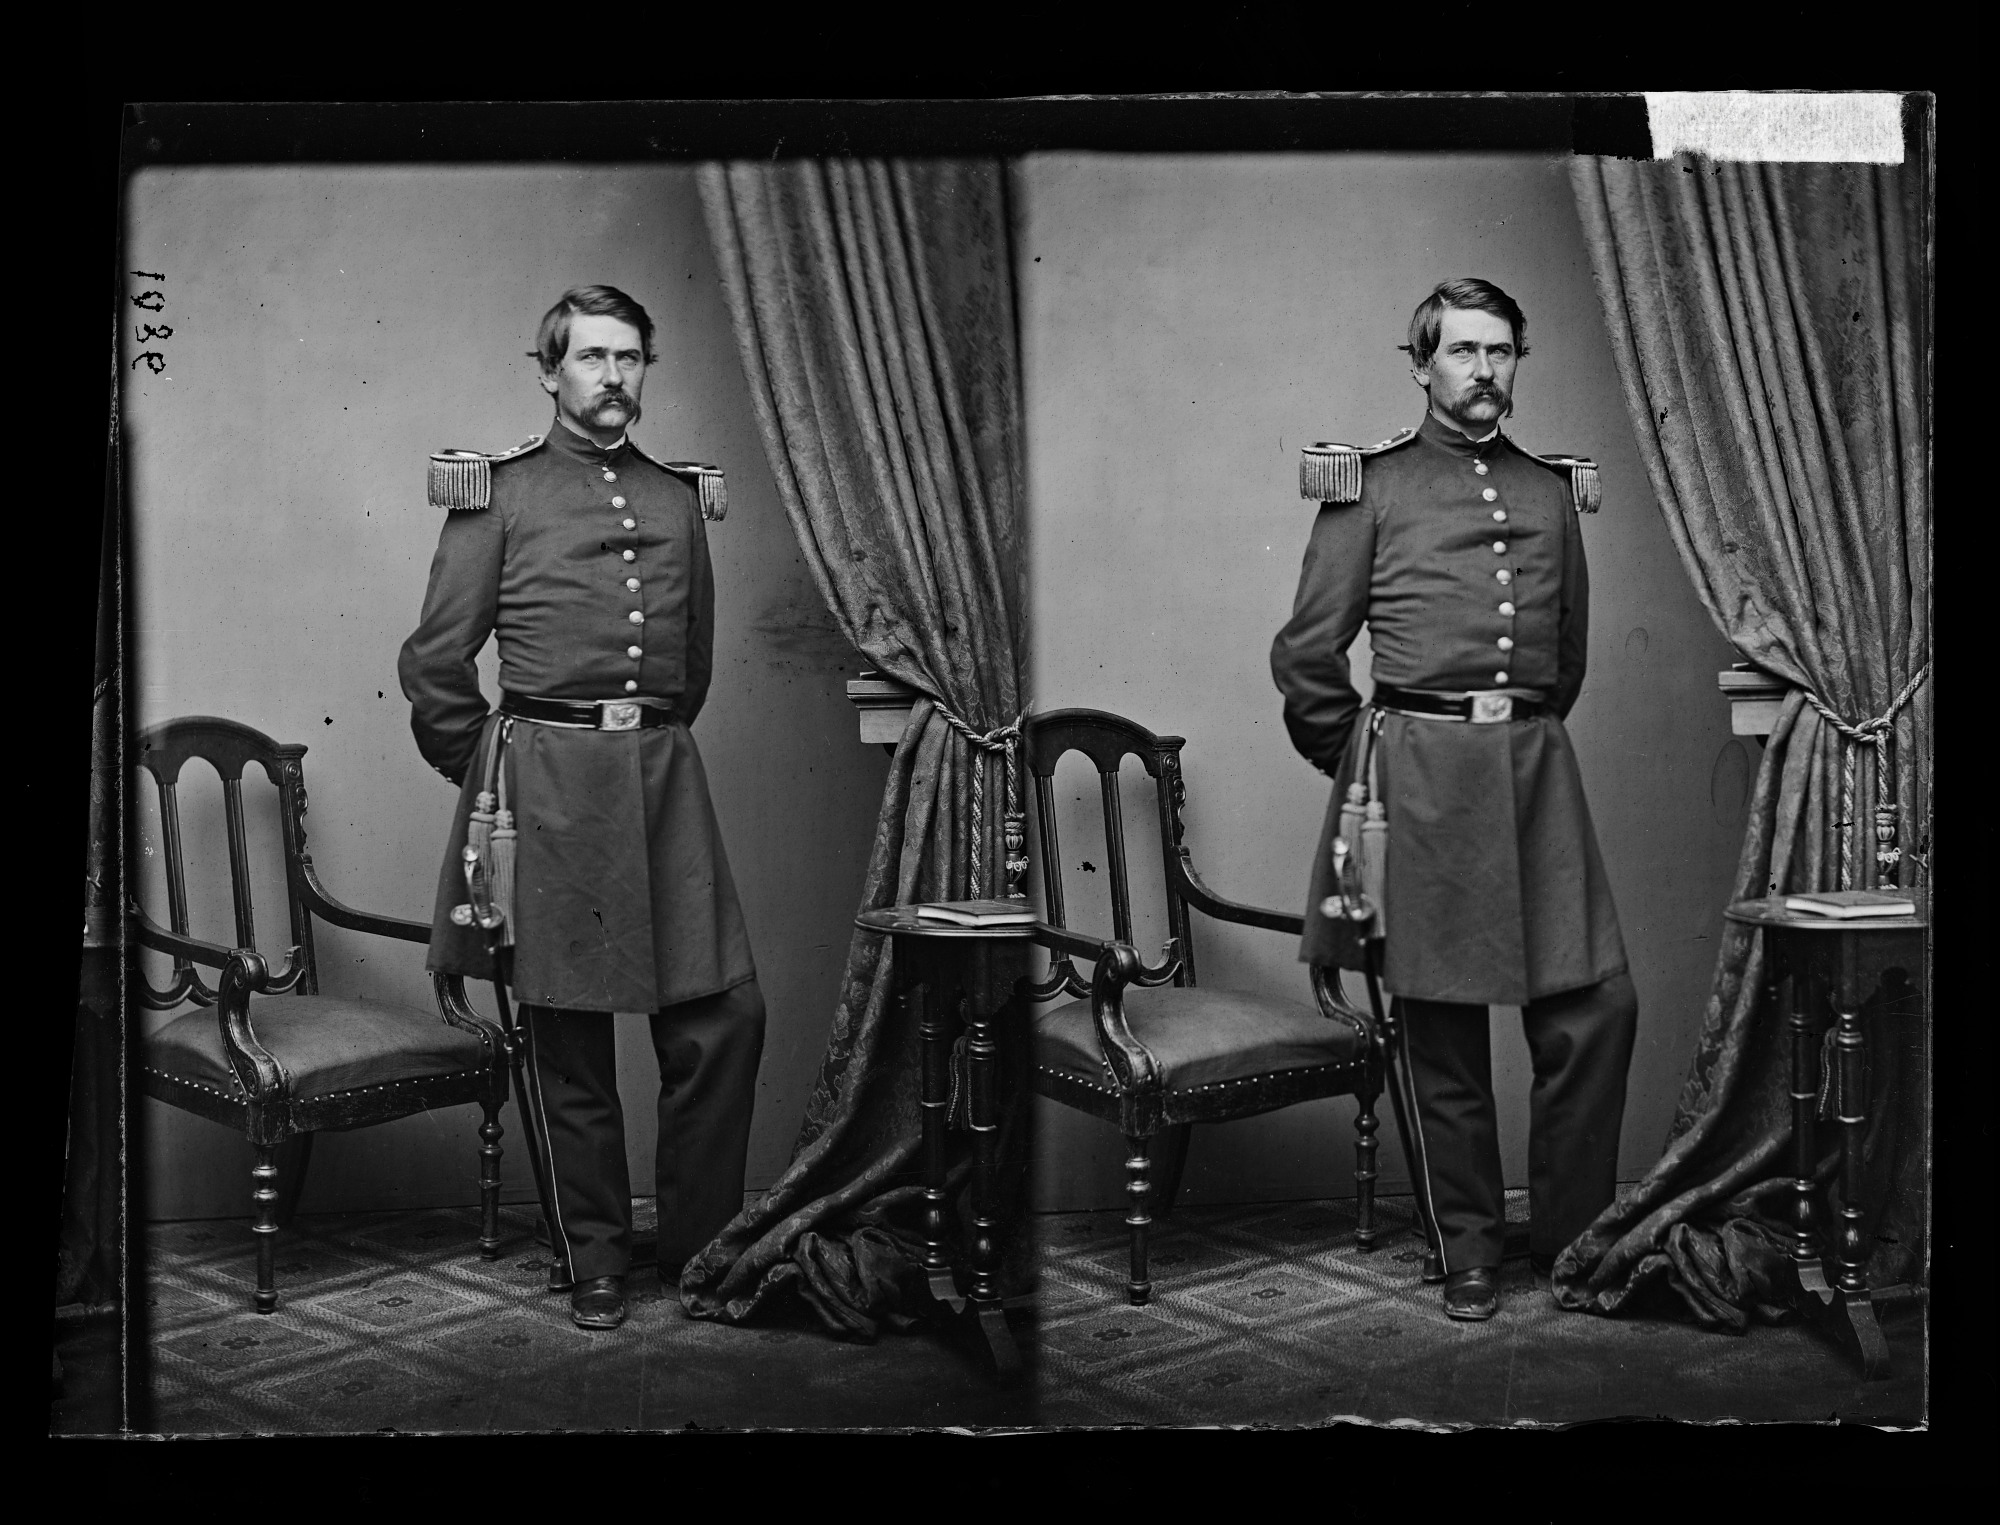 Thomas F. Meagher